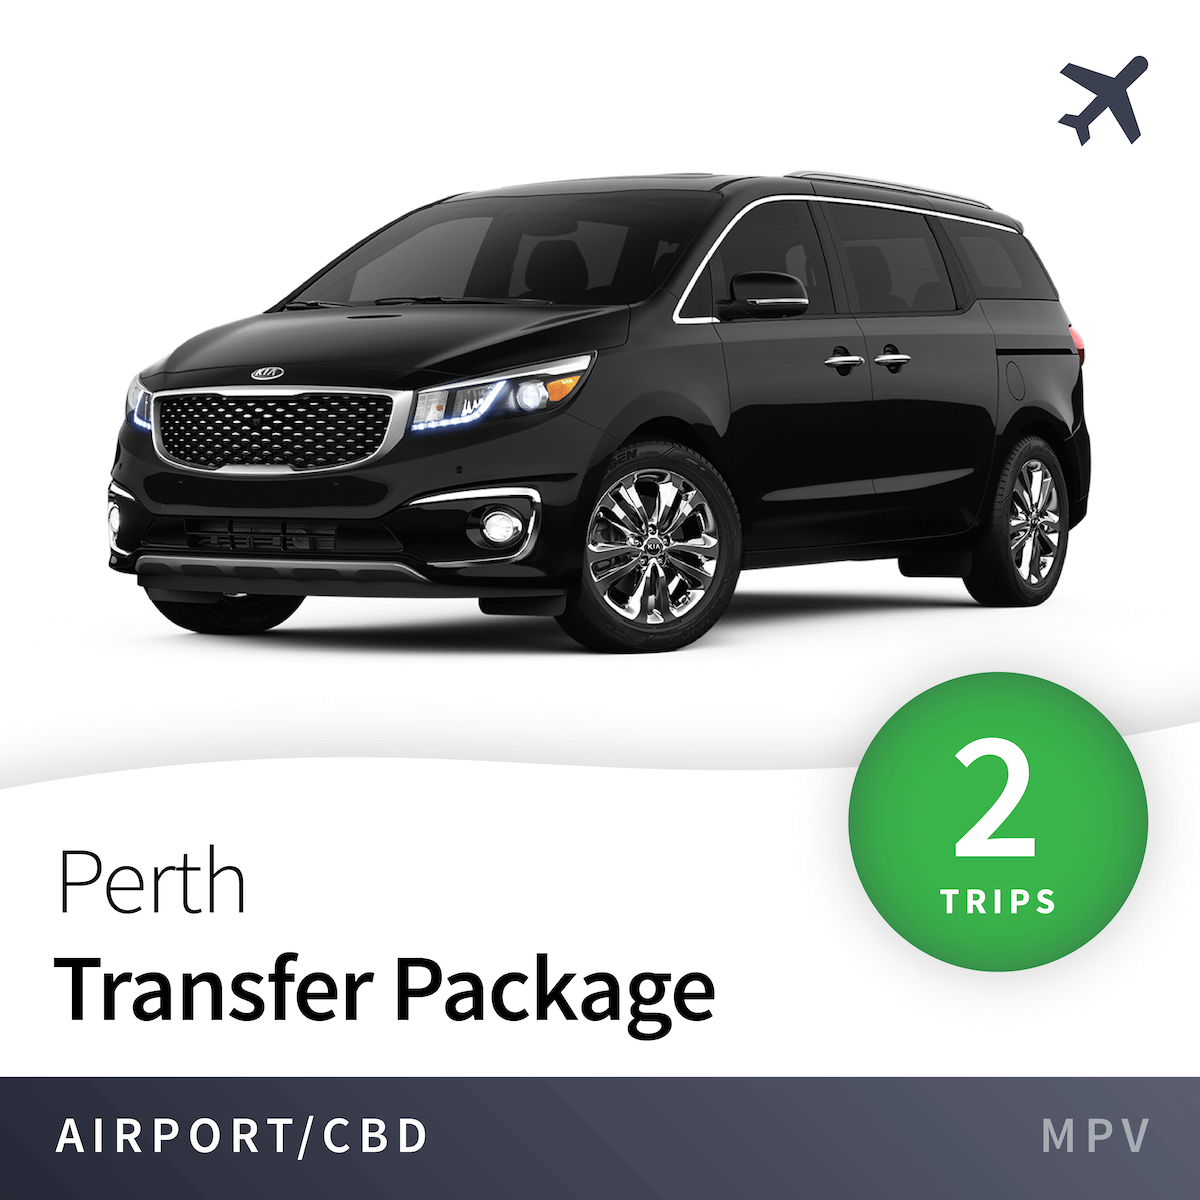 Perth Airport Transfer Package - MPV (2 Trips) 4